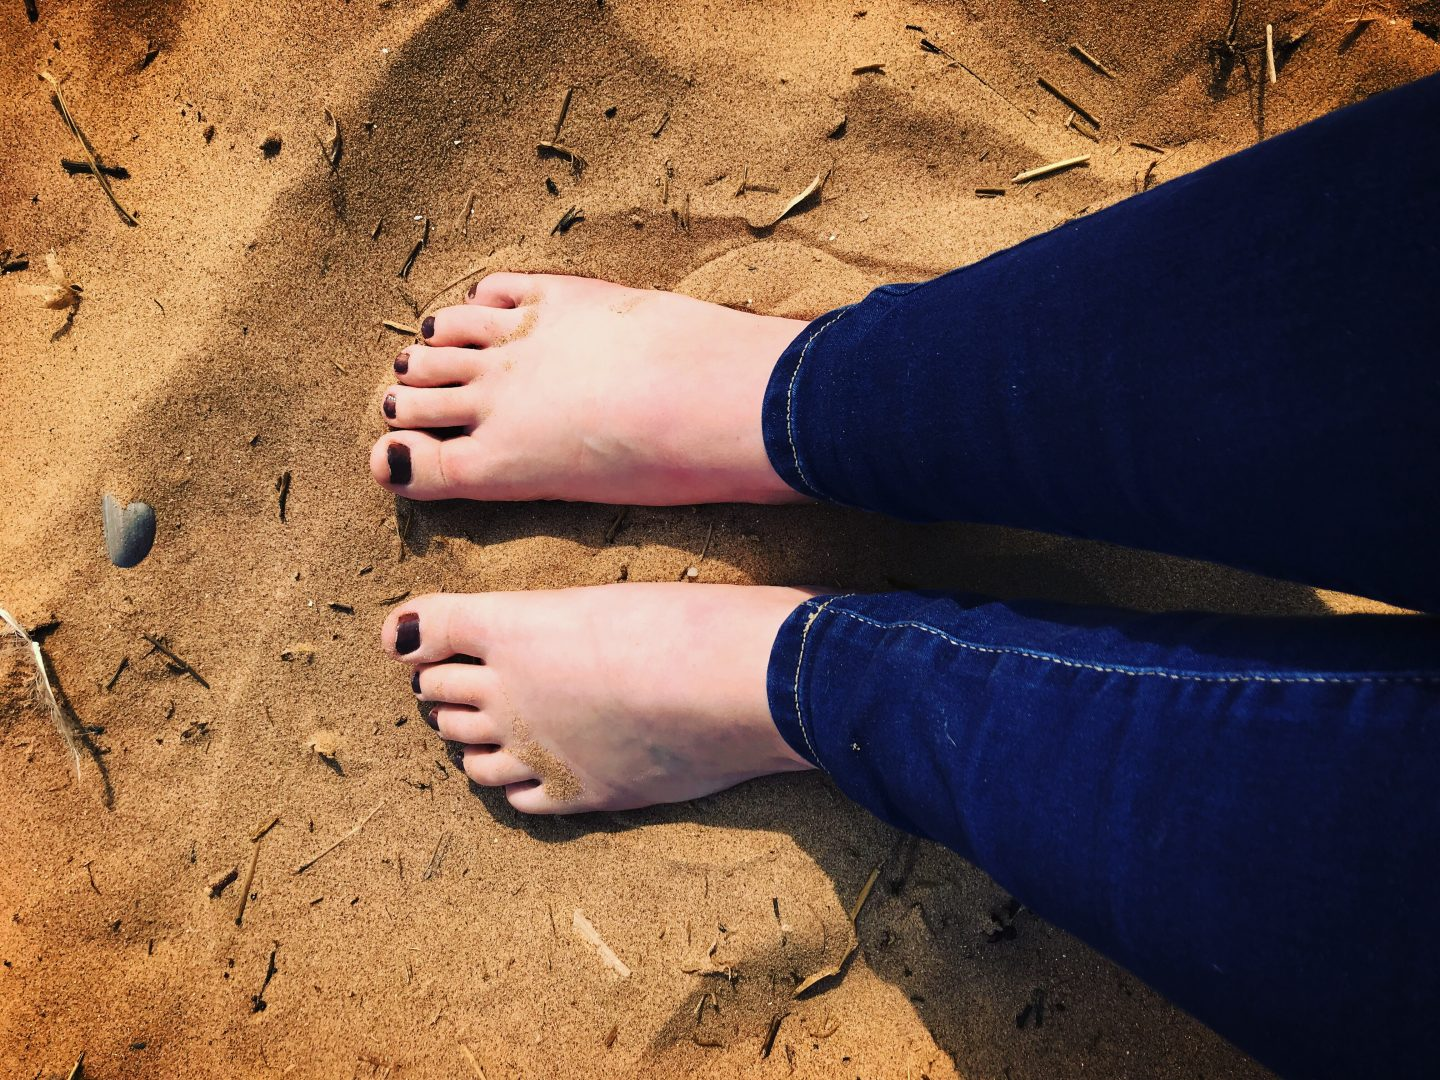 #TheOrdinaryMoments – Feel The Sand Between Your Toes